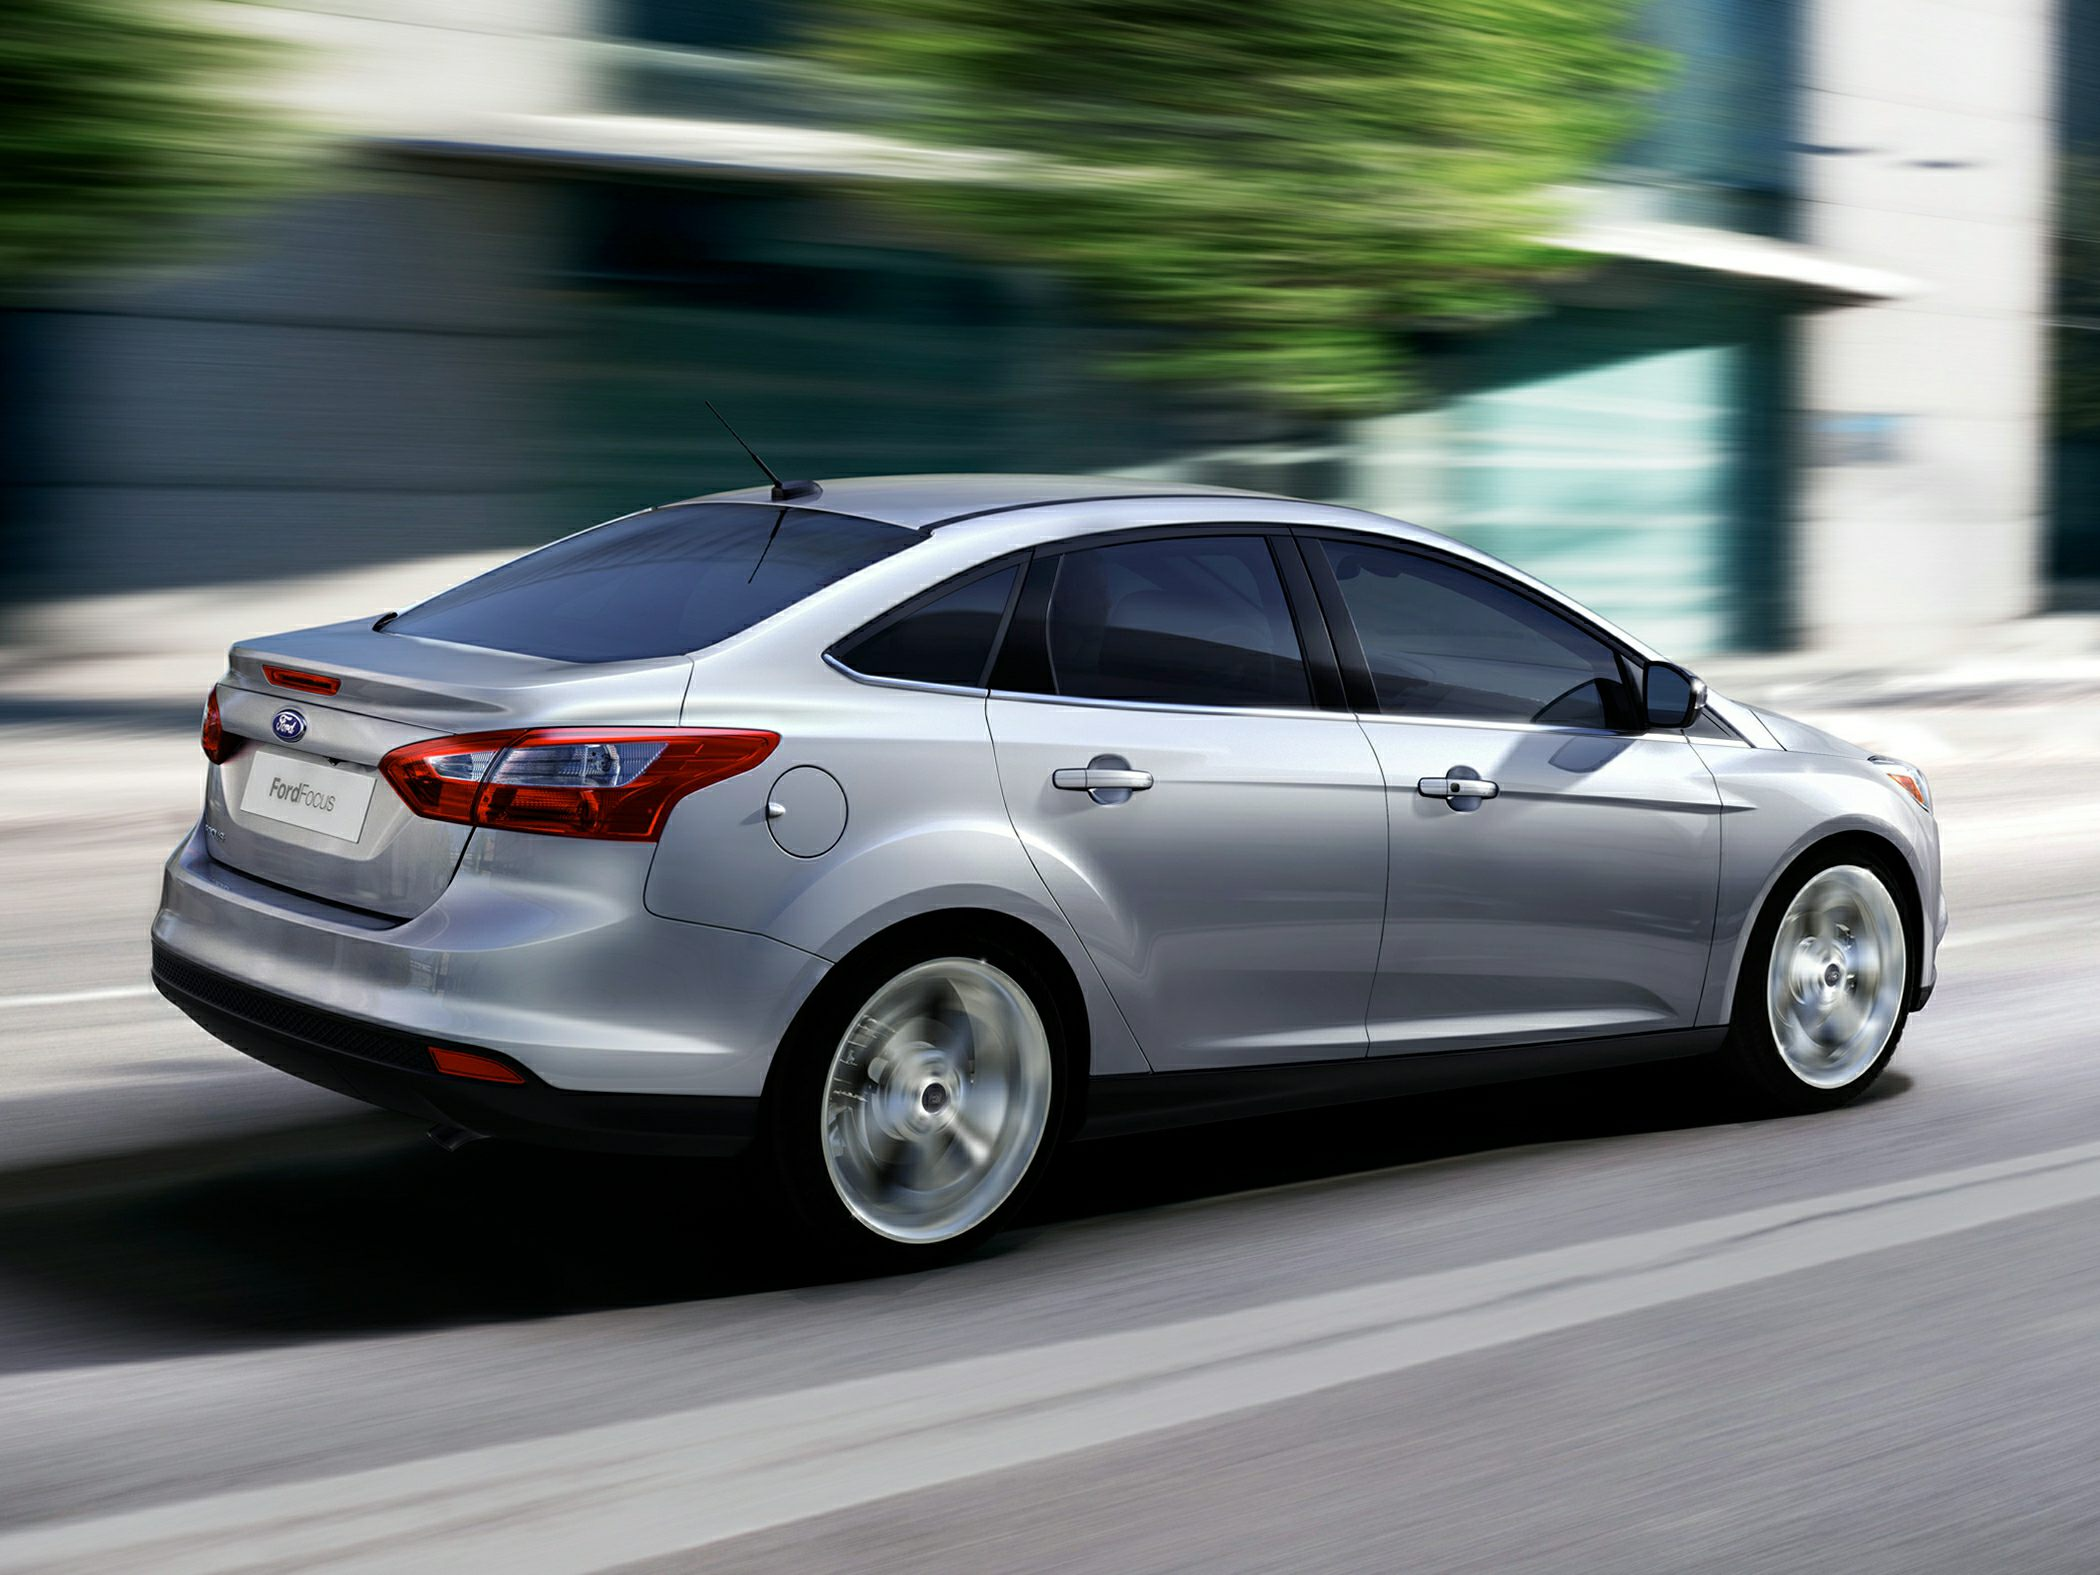 2014 ford focus image 12